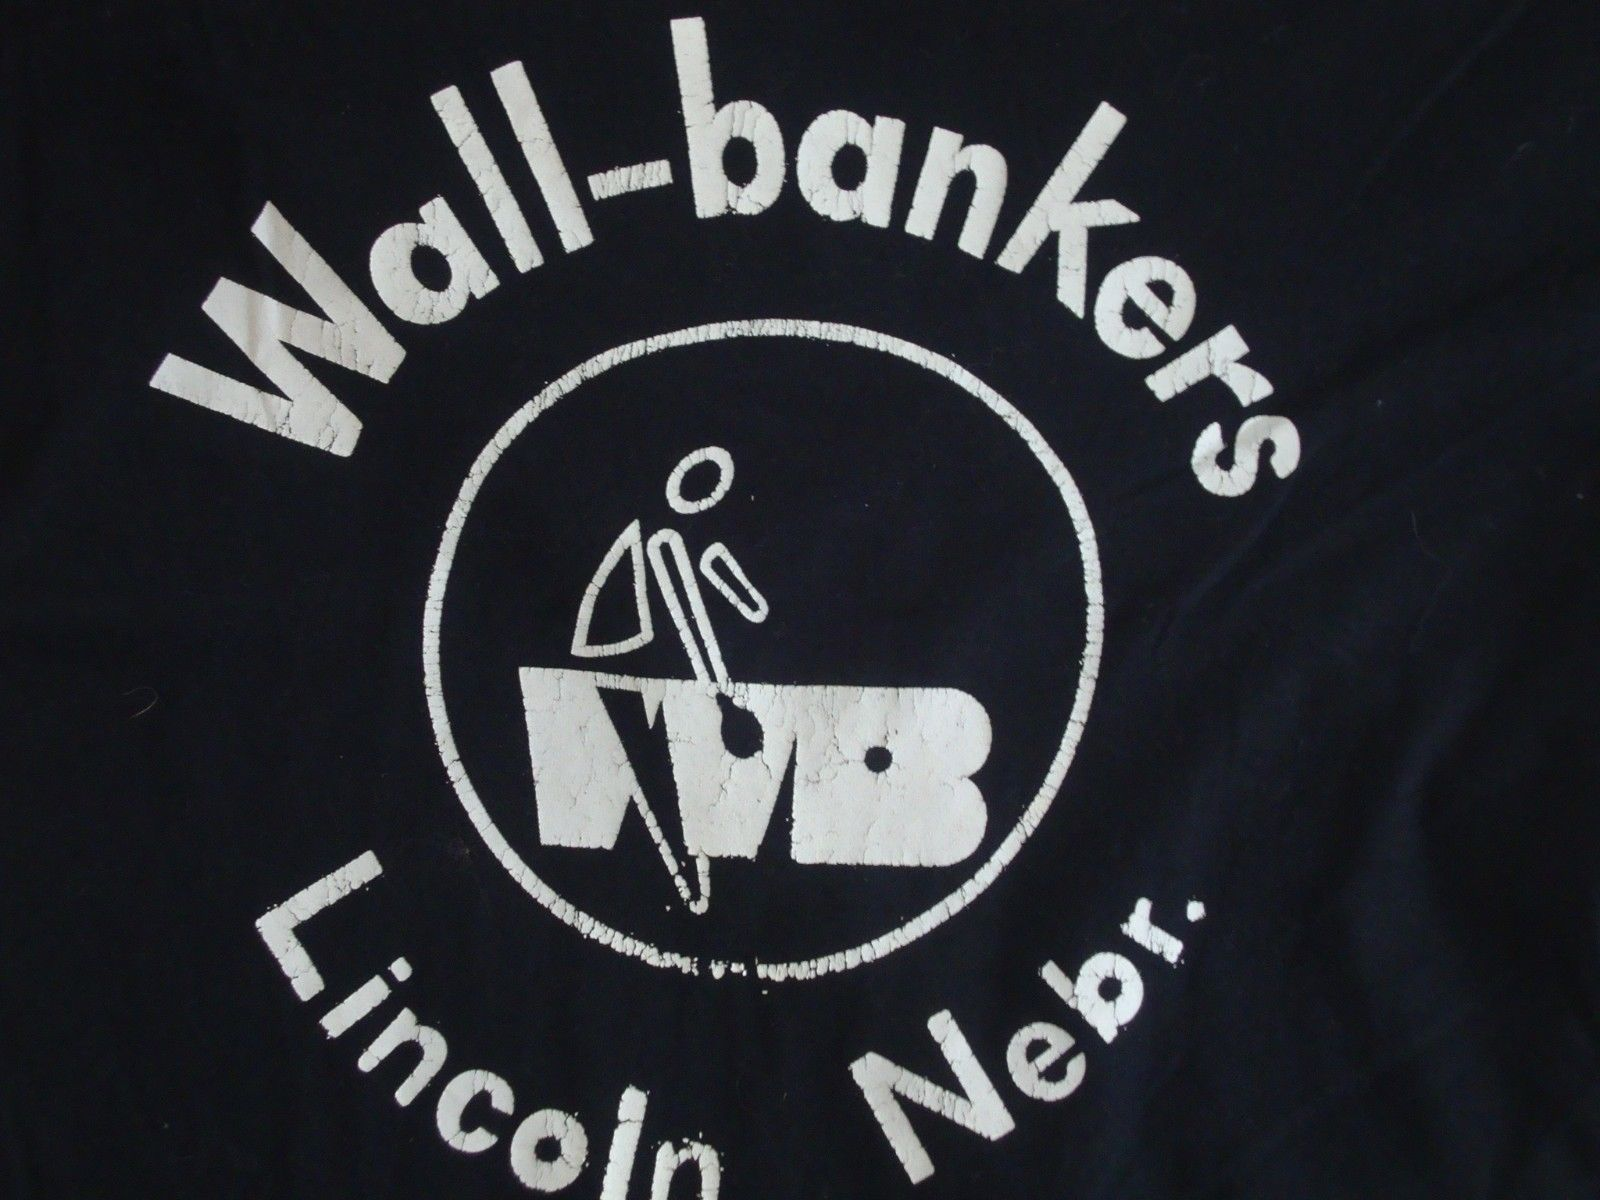 Primary image for Vintage Wall Bankers Lincoln Nebraska vacation Tourist T Shirt M